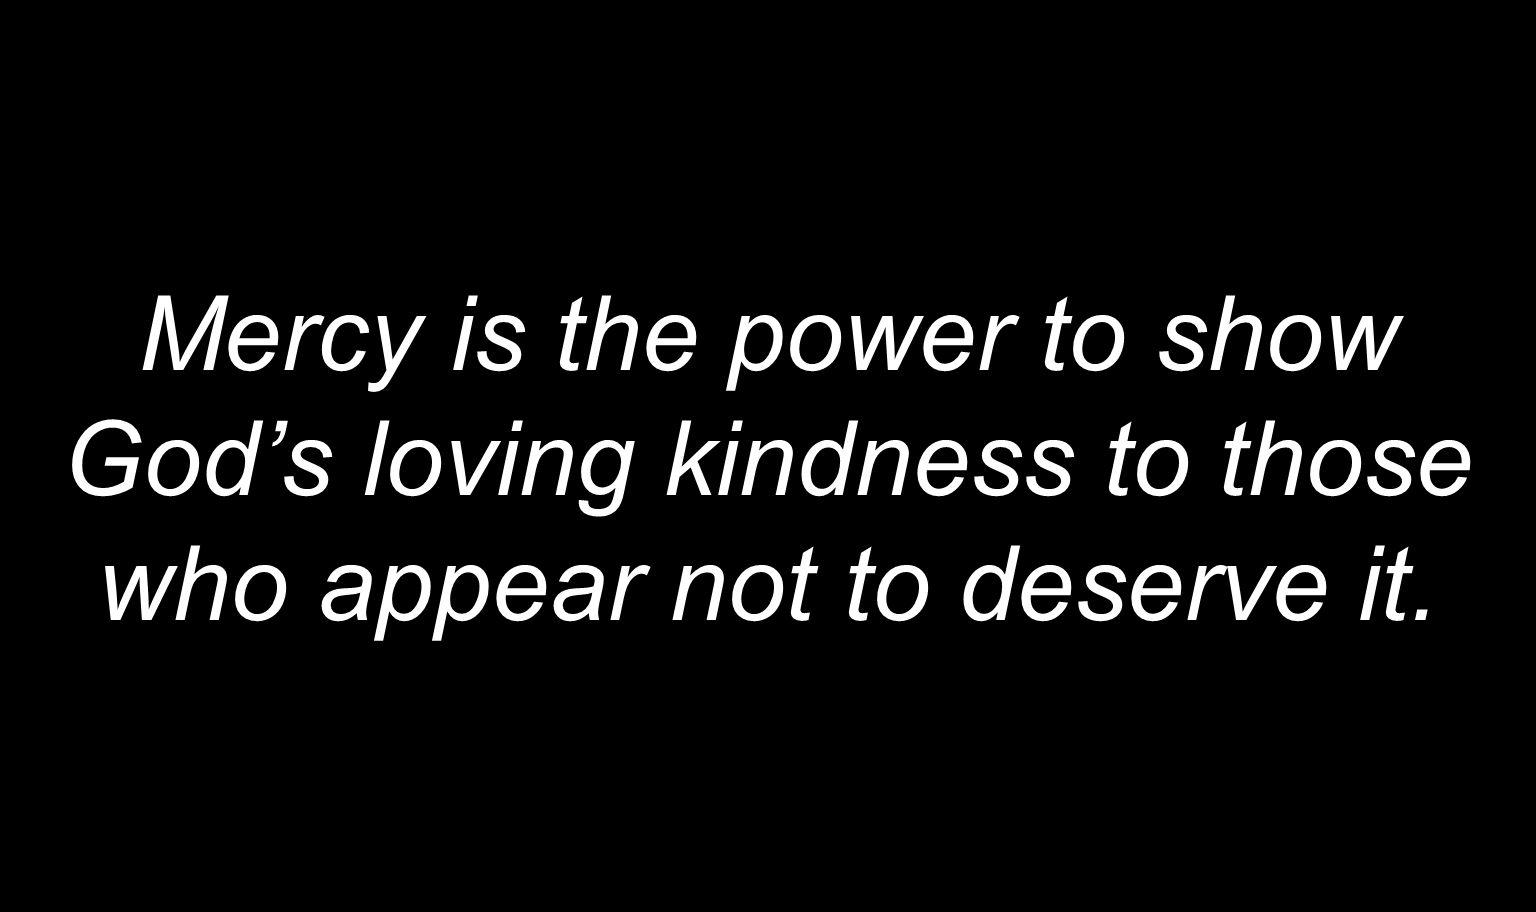 Mercy is the power to show Gods loving kindness to those who appear not to deserve it.